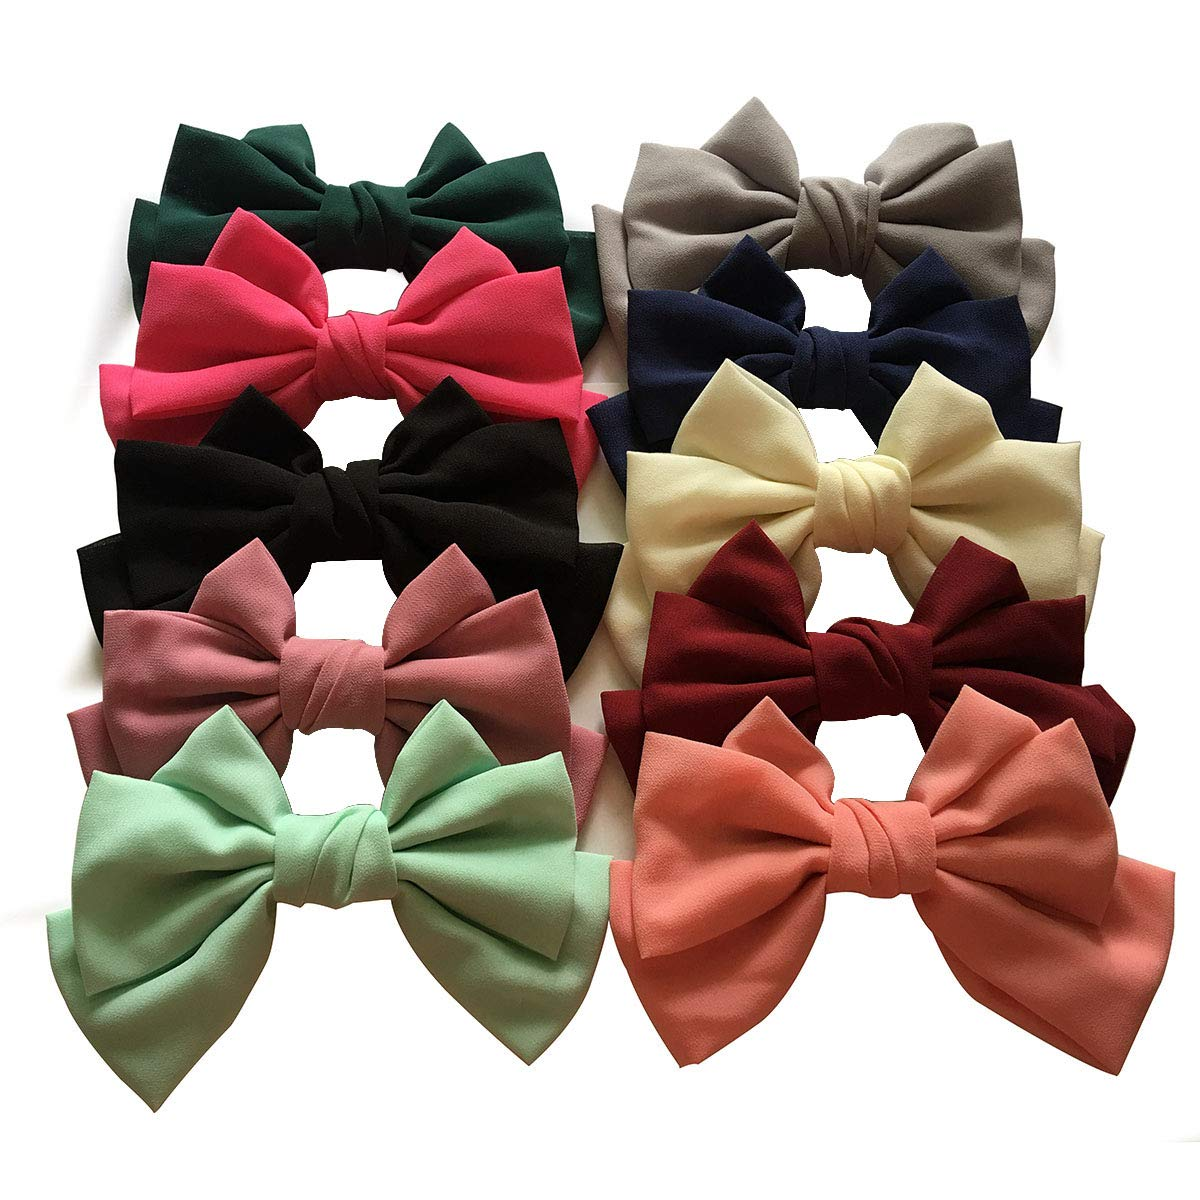 Yazon 10pcs Large Women Fashion Fabric Bows Hair Barrettes Adult Hair Bows Clips … Yazhao YZ090